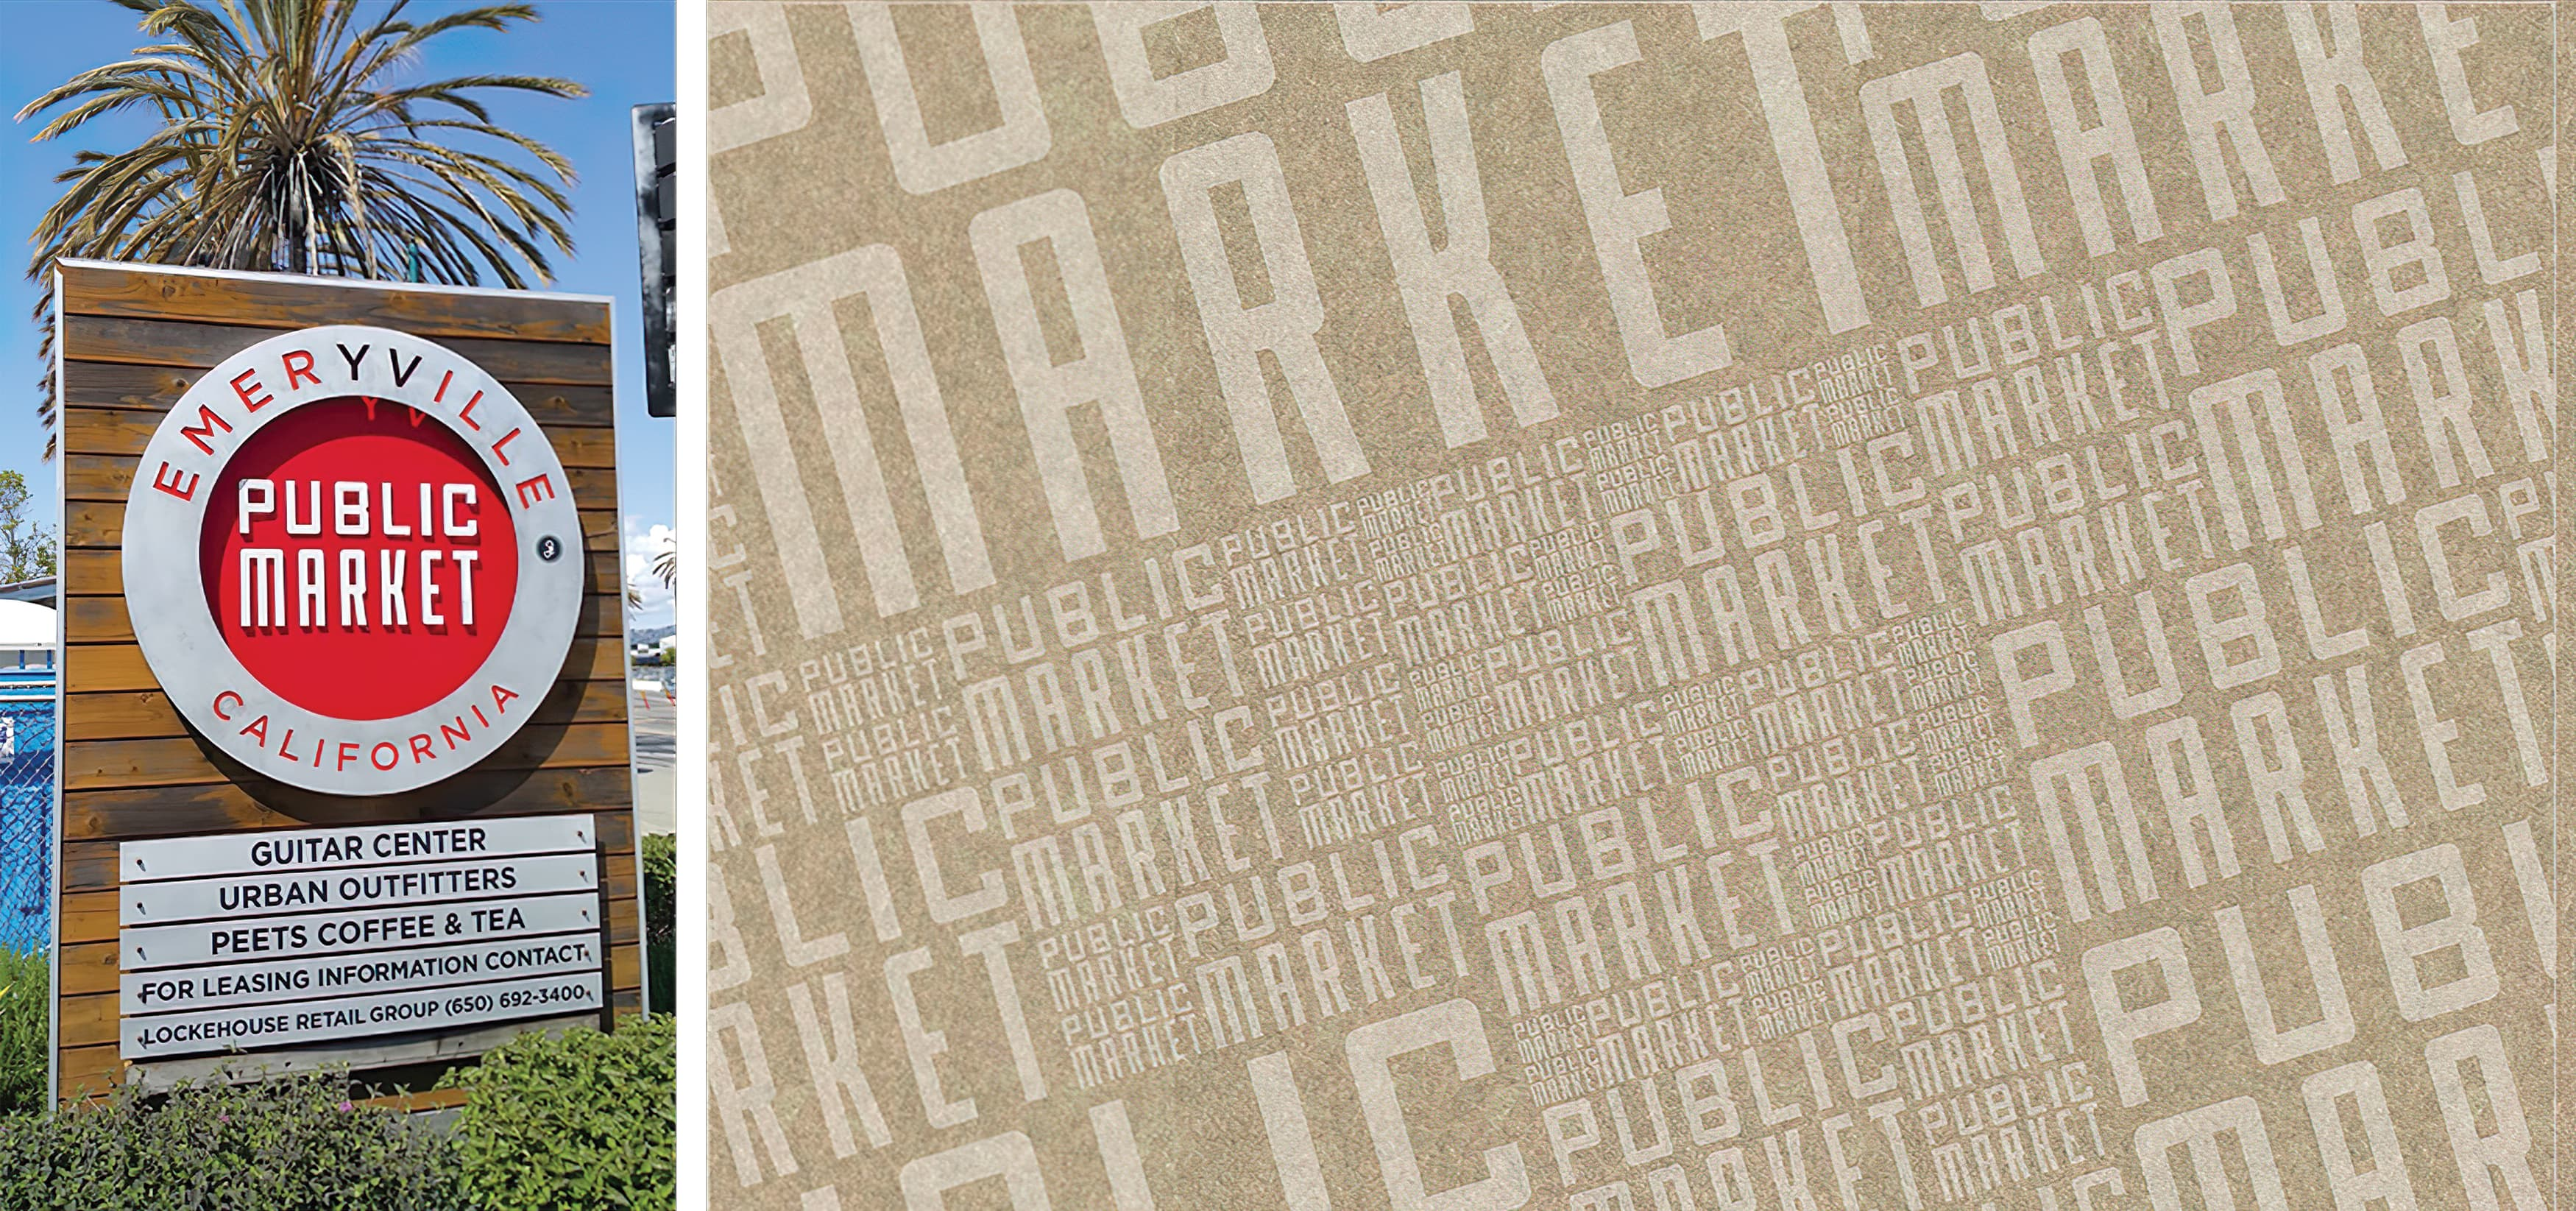 RSM Design worked with TMG Partners to develop signage and wayfinding program for Public Market, a dining and shopping center in San Francisco, California. Project Identity Signage.